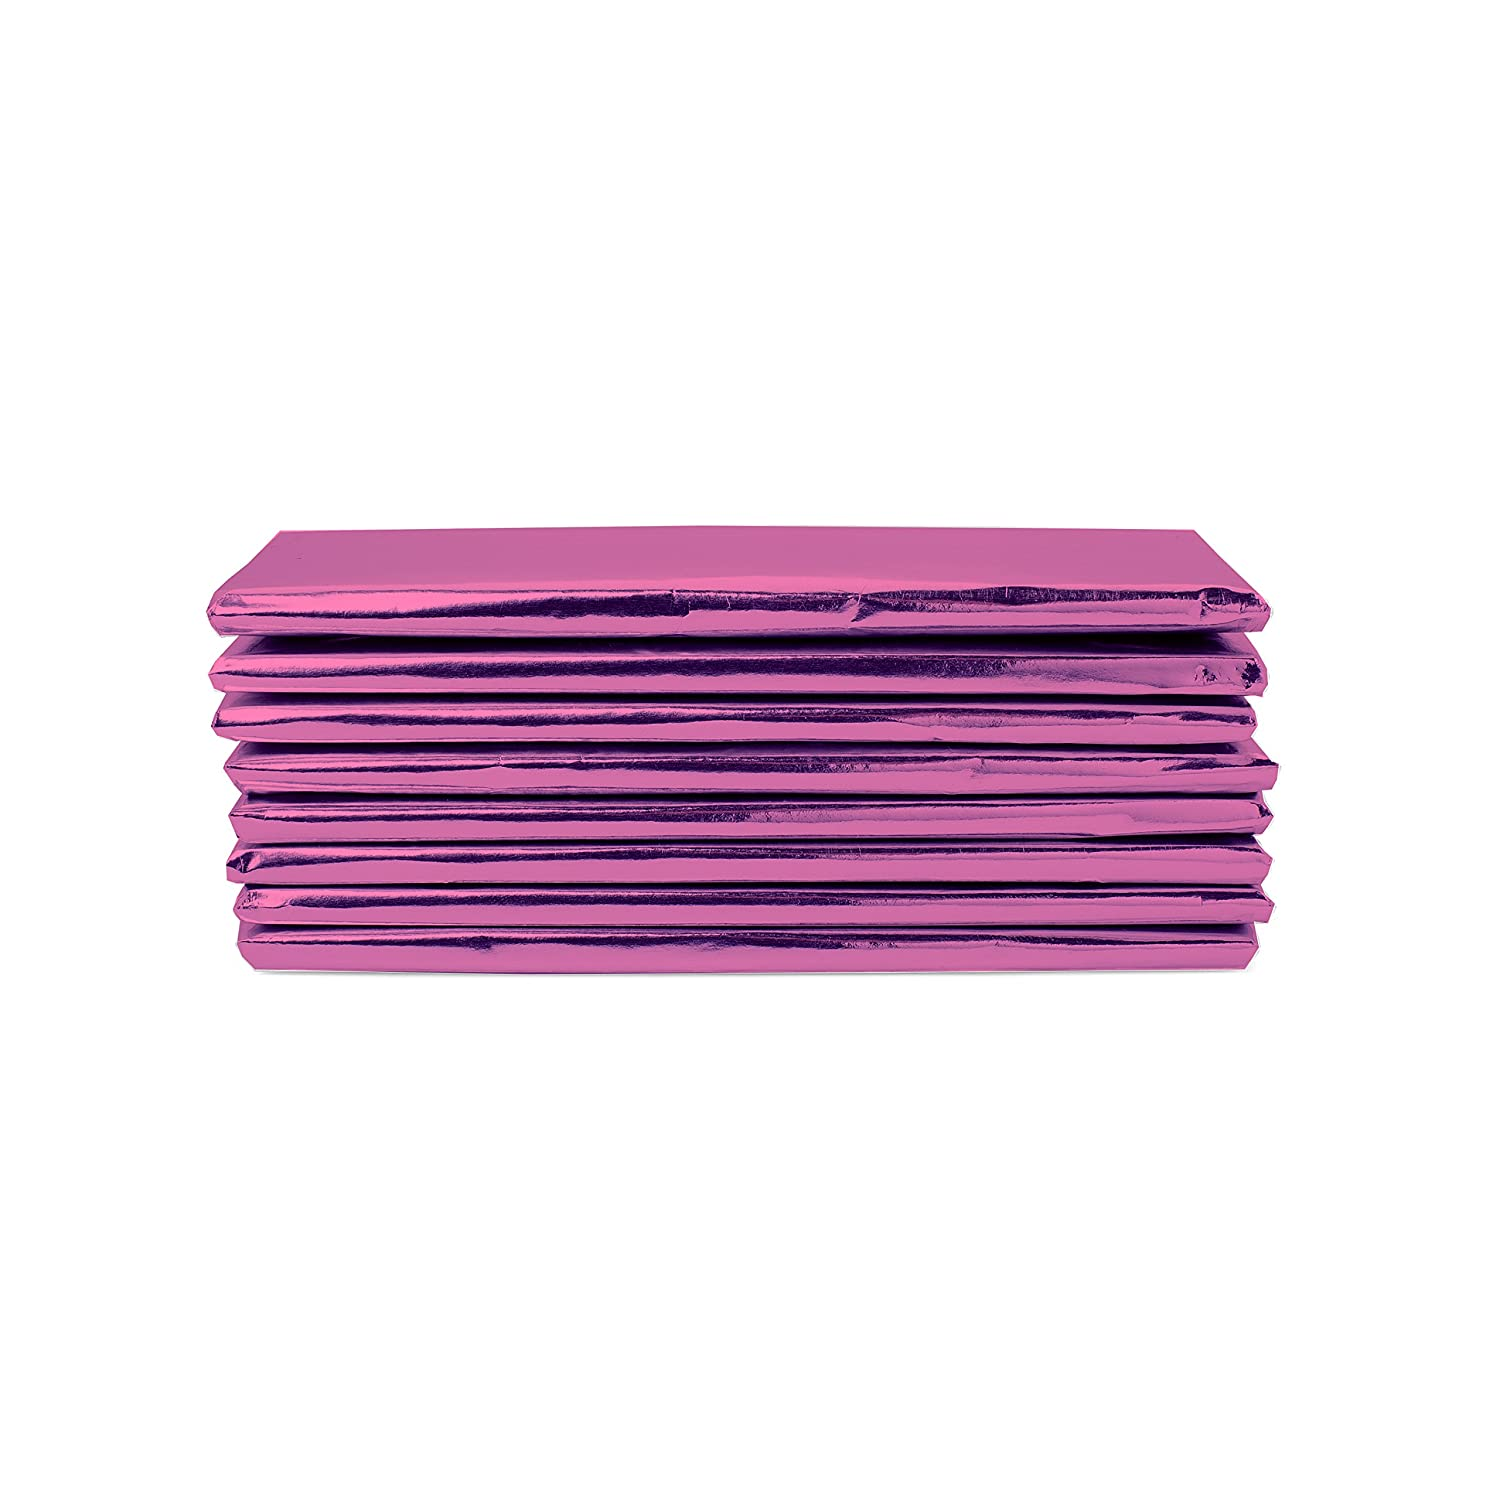 """Foil Wrapper (Pink) - Pack of 100 Candy Bar Wrappers with Thick Paper Backing - Folds and Wraps Well - Best for Wrapping 1.55Oz Hershey/ Candies/ Chocolate Bars/ Gifts - Size 6"""" X 7.5"""""""